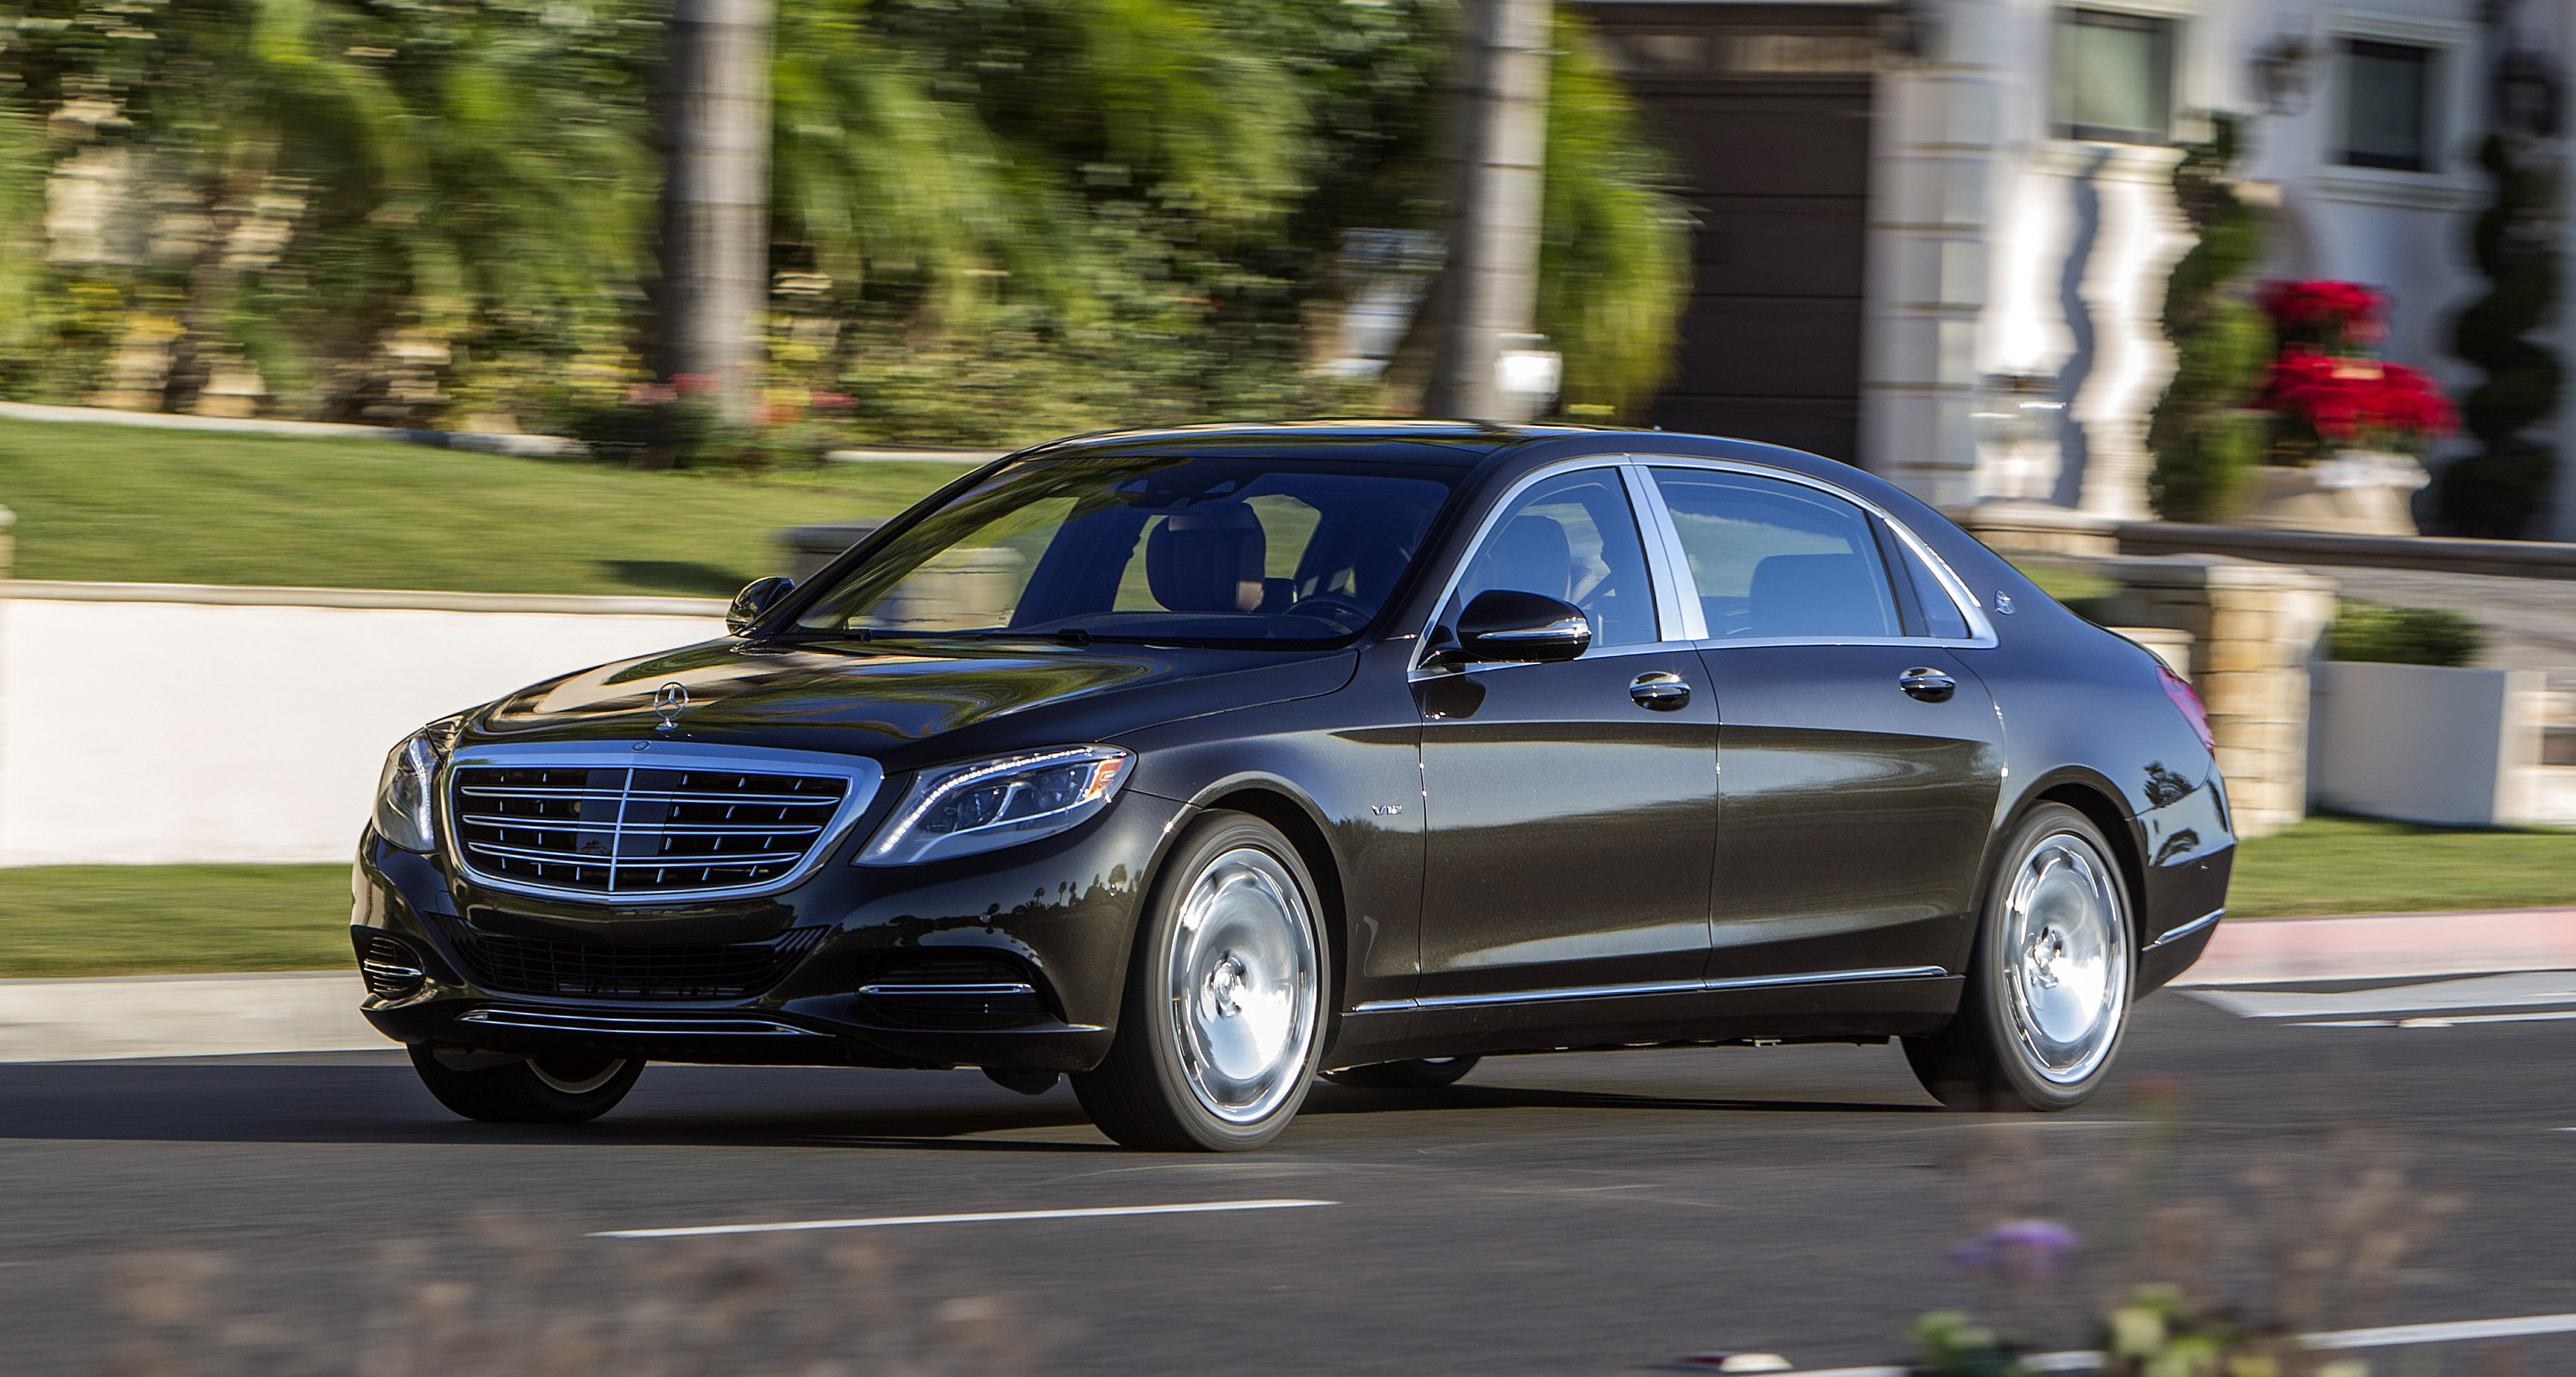 Mercedes Maybach S Class Review Photos CarAdvice